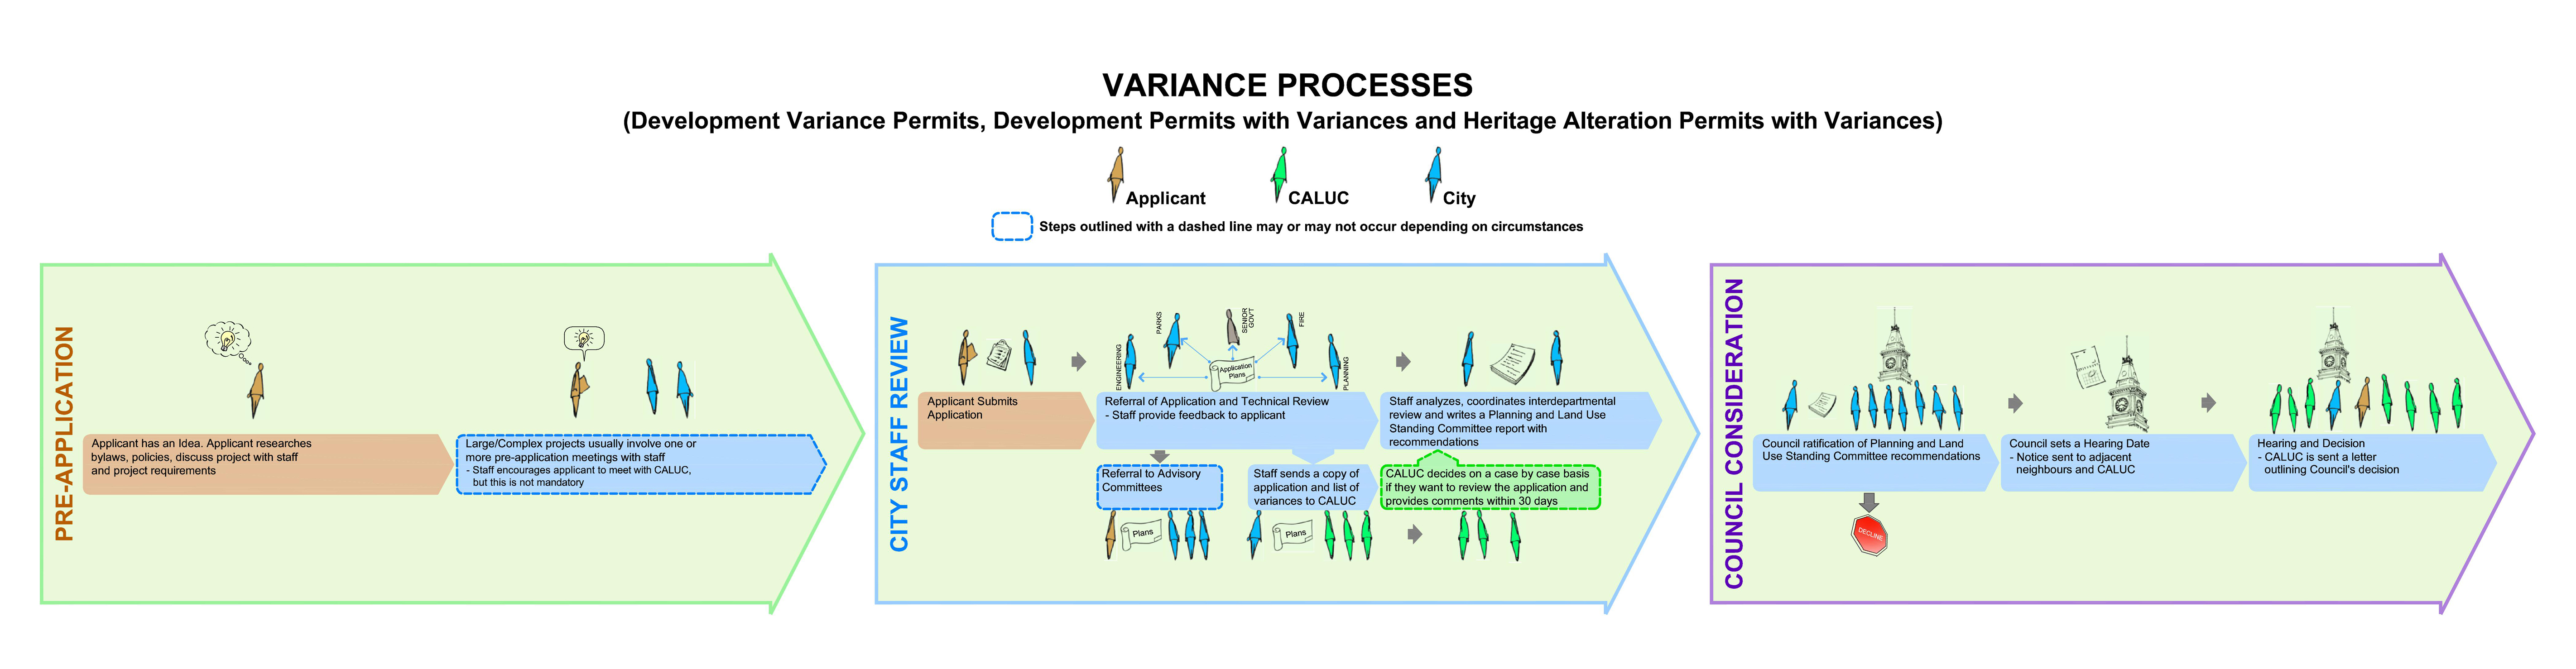 Community association land use committees victoria application submission and review process nvjuhfo Images